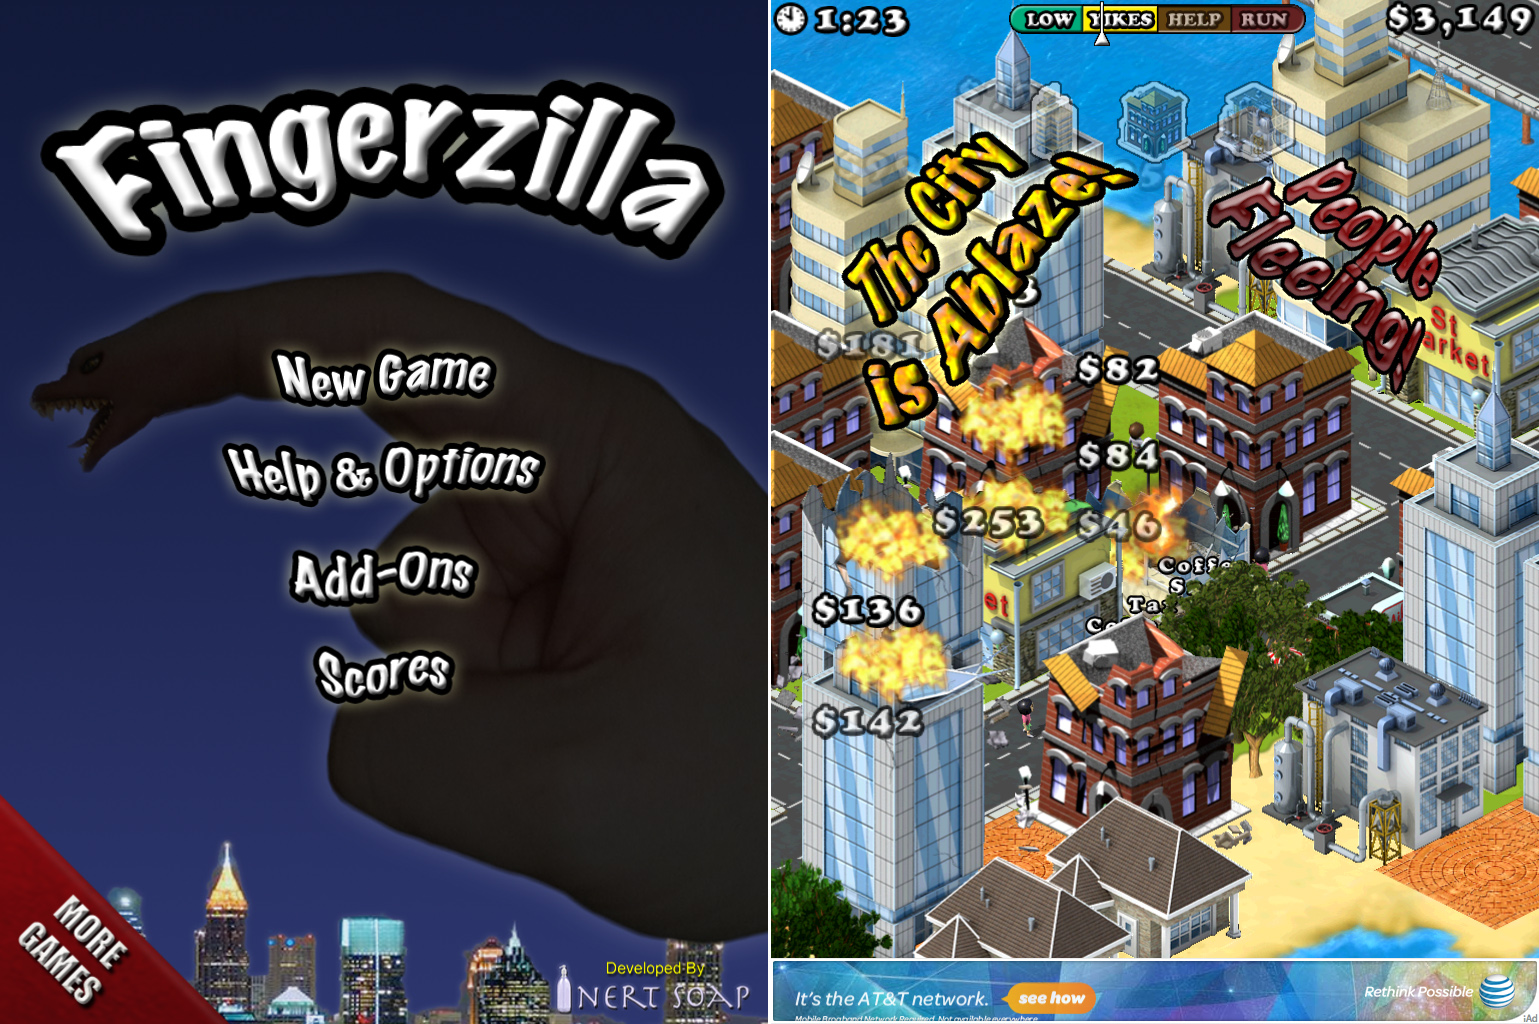 A Chance To Win Shiny Tokens For Fingerzilla To Unlock Additional Content